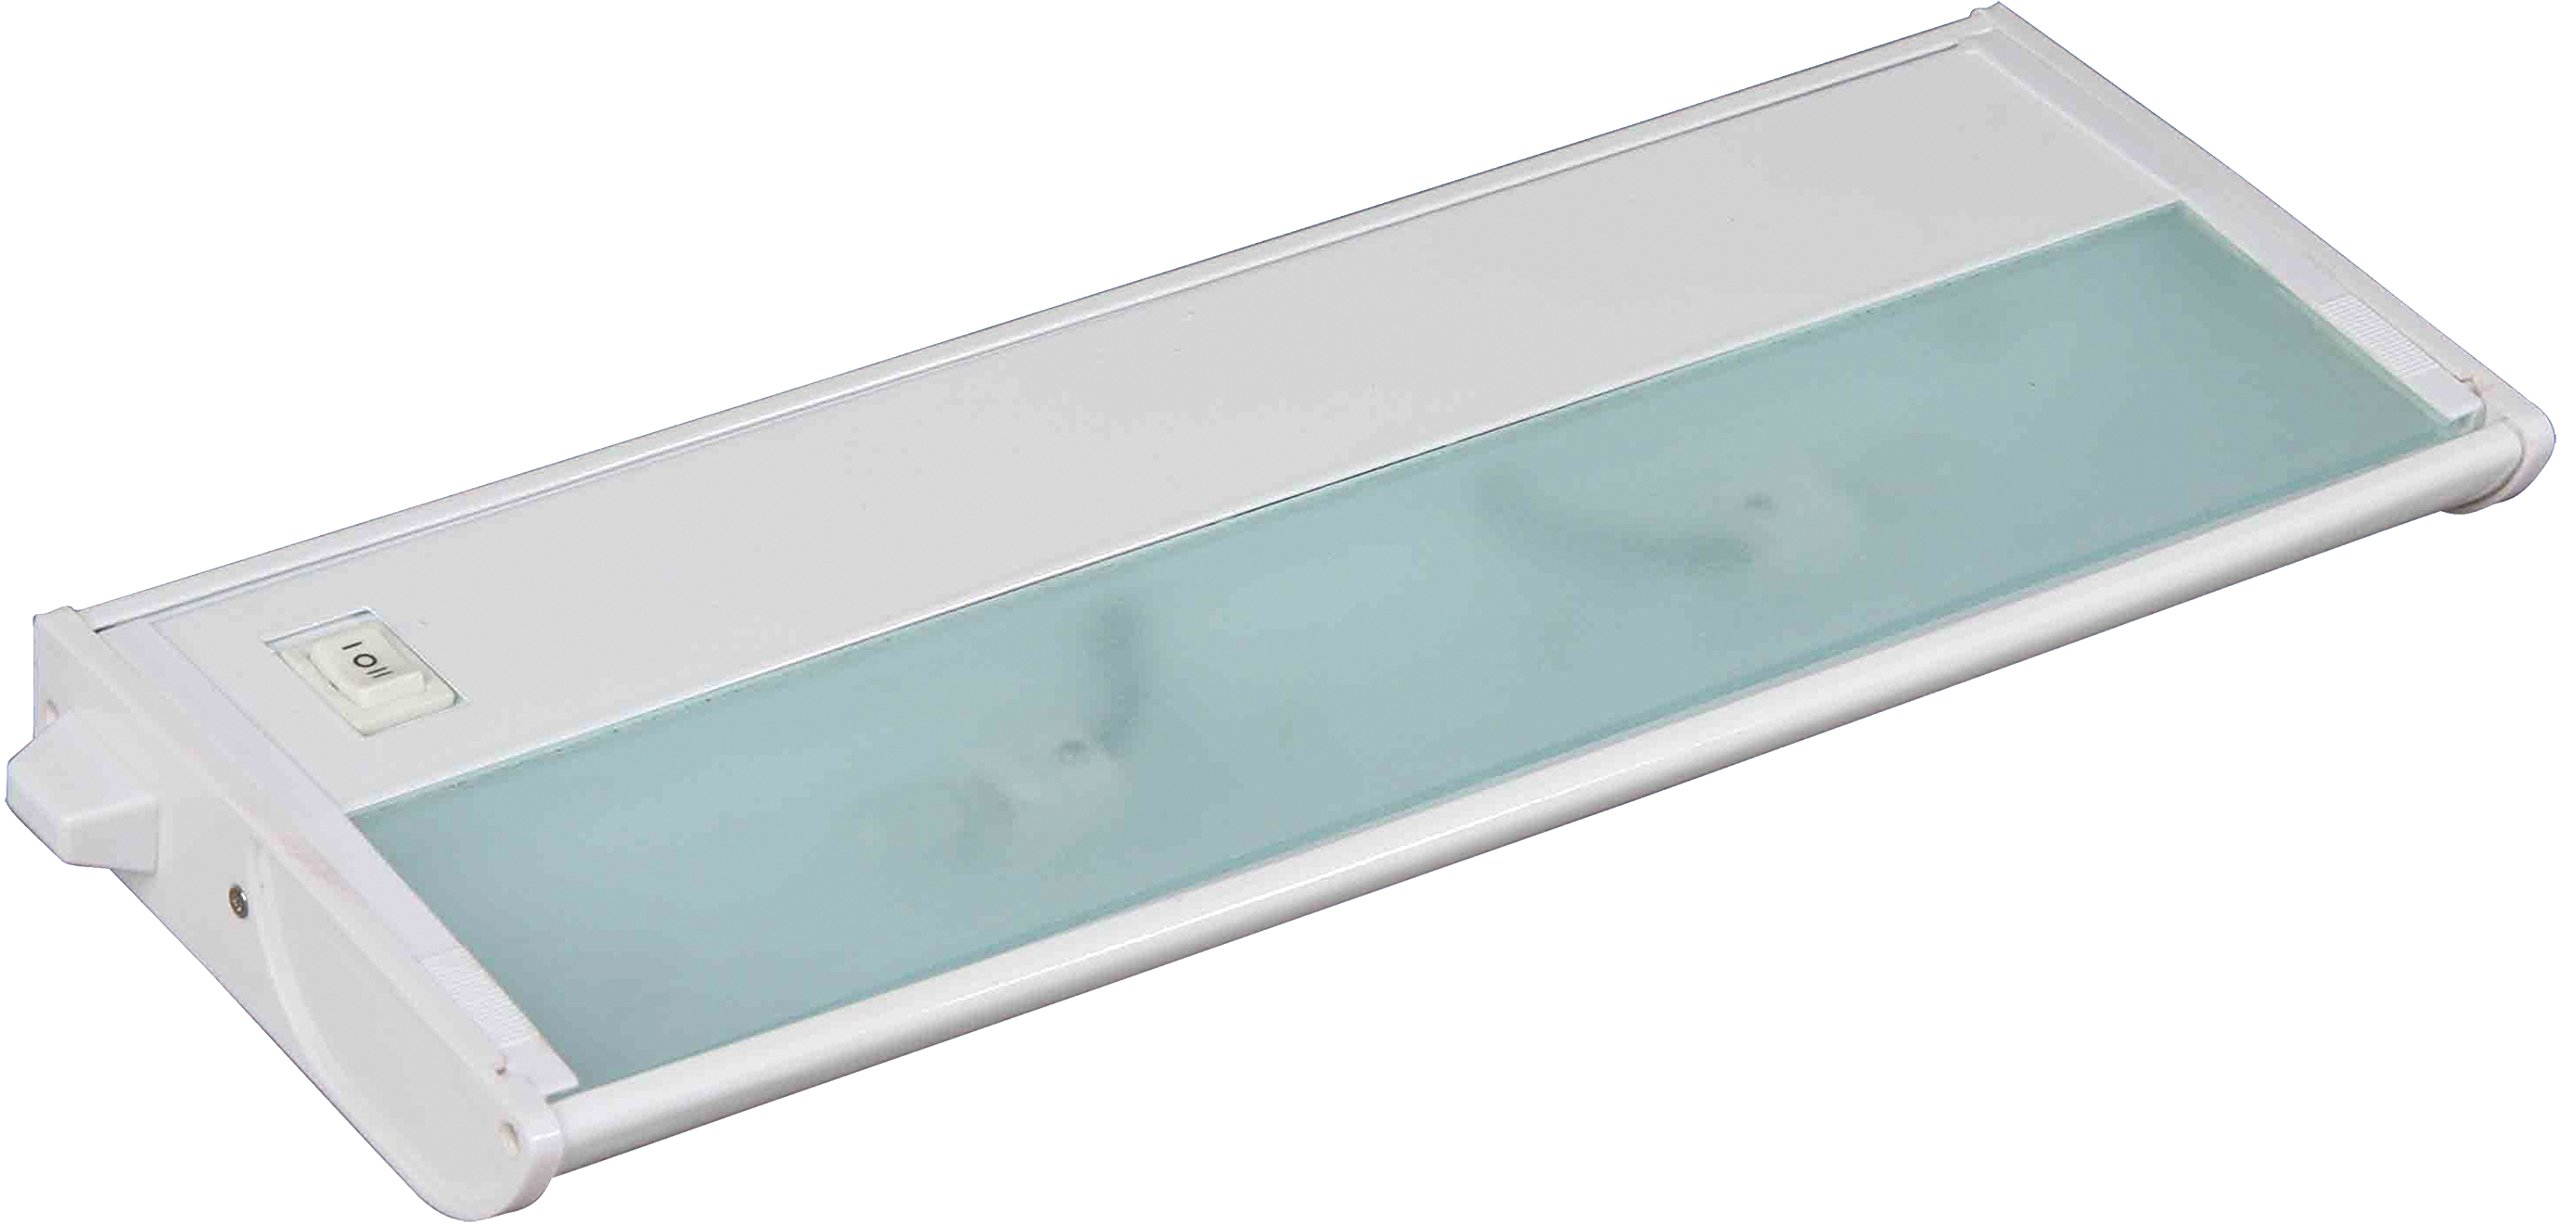 Maxim 87841WT CounterMax MX-X120c 13'' 2-Light 120V Xenon, White Finish, Glass, G8 Xenon Xenon Bulb , 40W Max., Damp Safety Rating, 2900K Color Temp, Standard Dimmable, Glass Shade Material, 800 Rated Lumens